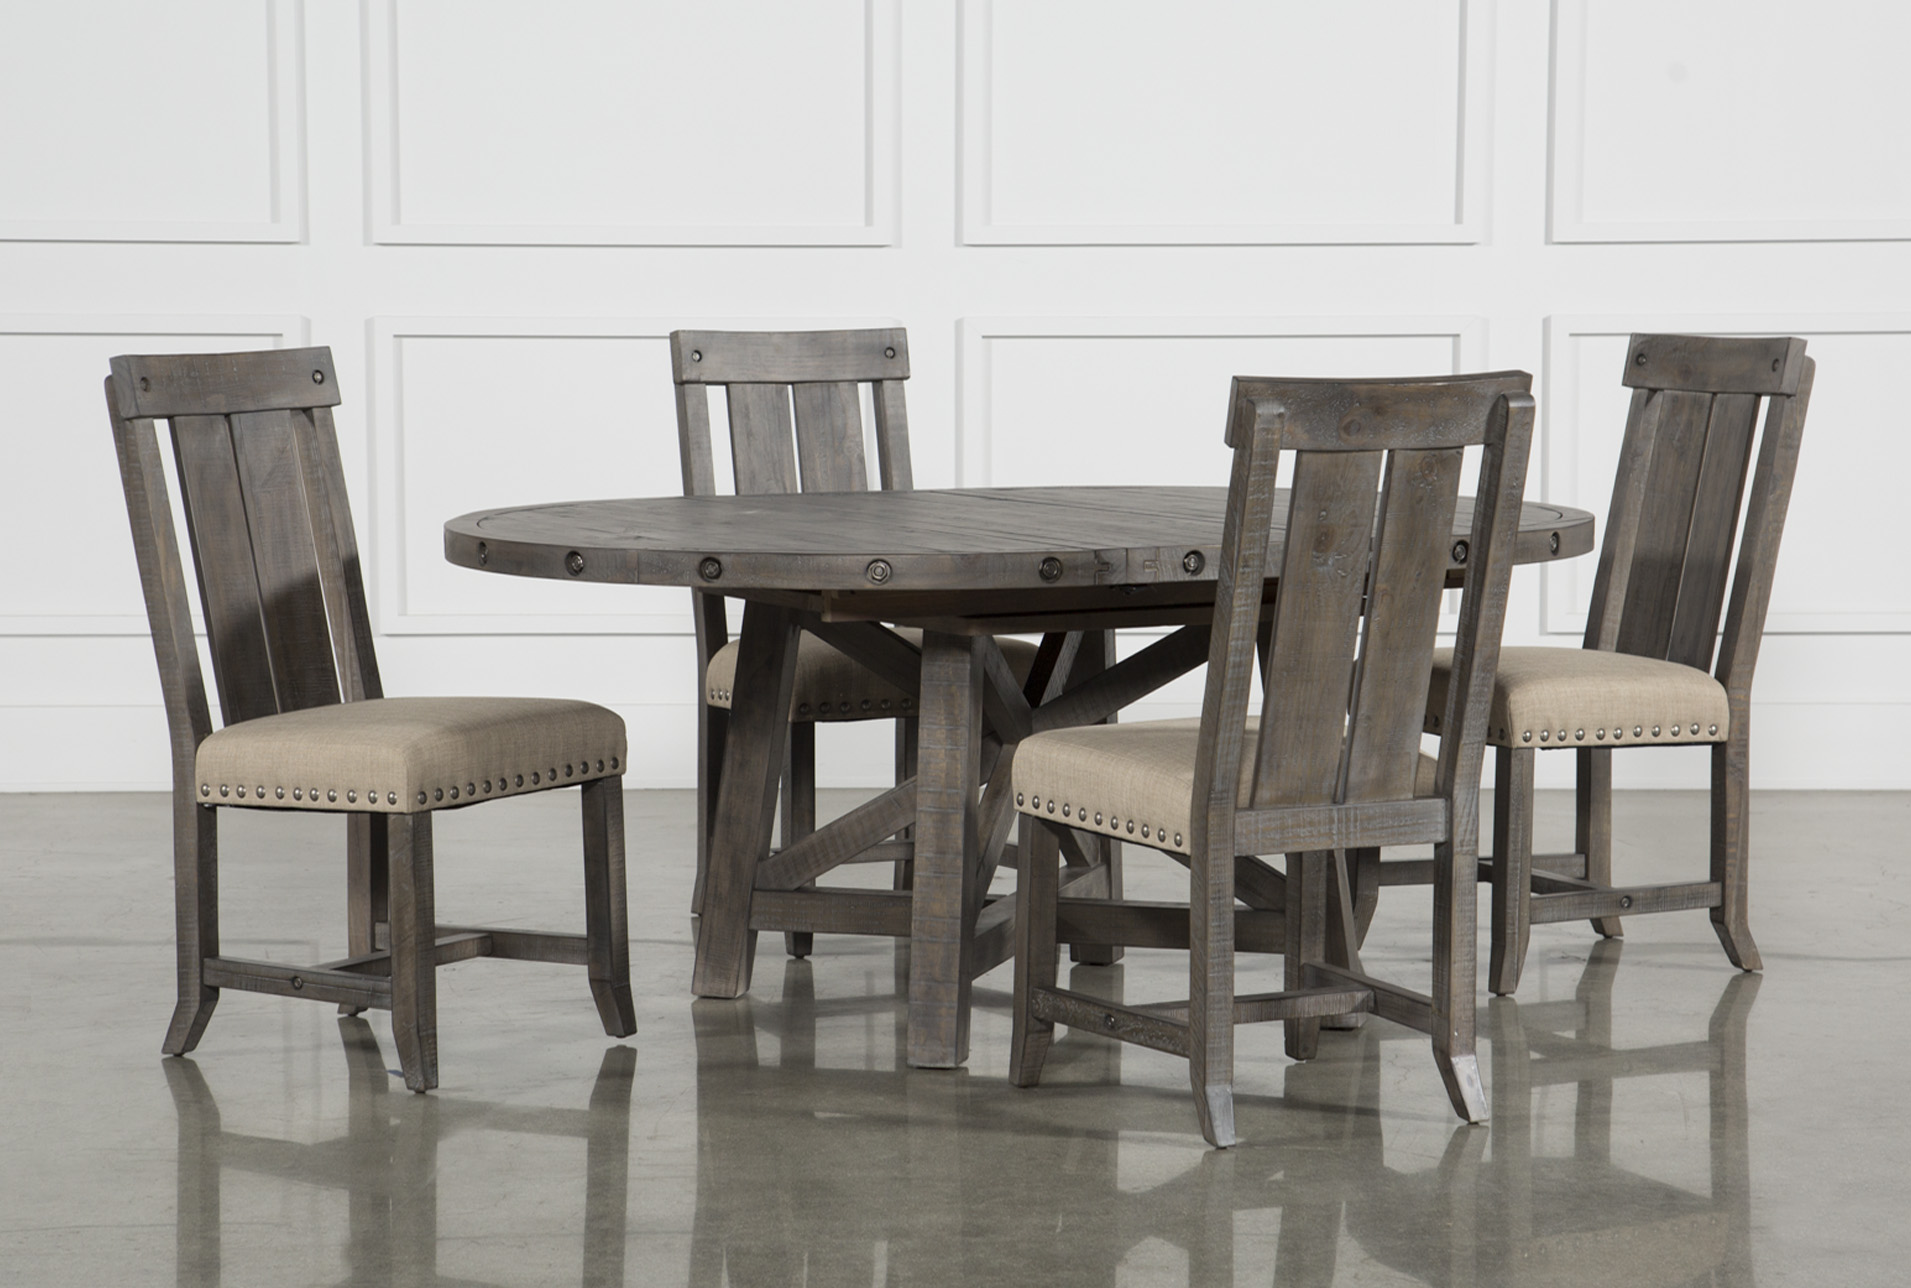 Jaxon Grey 5 Piece Round Extension Dining Set W/Wood Chairs & Dining Room Sets | Living Spaces